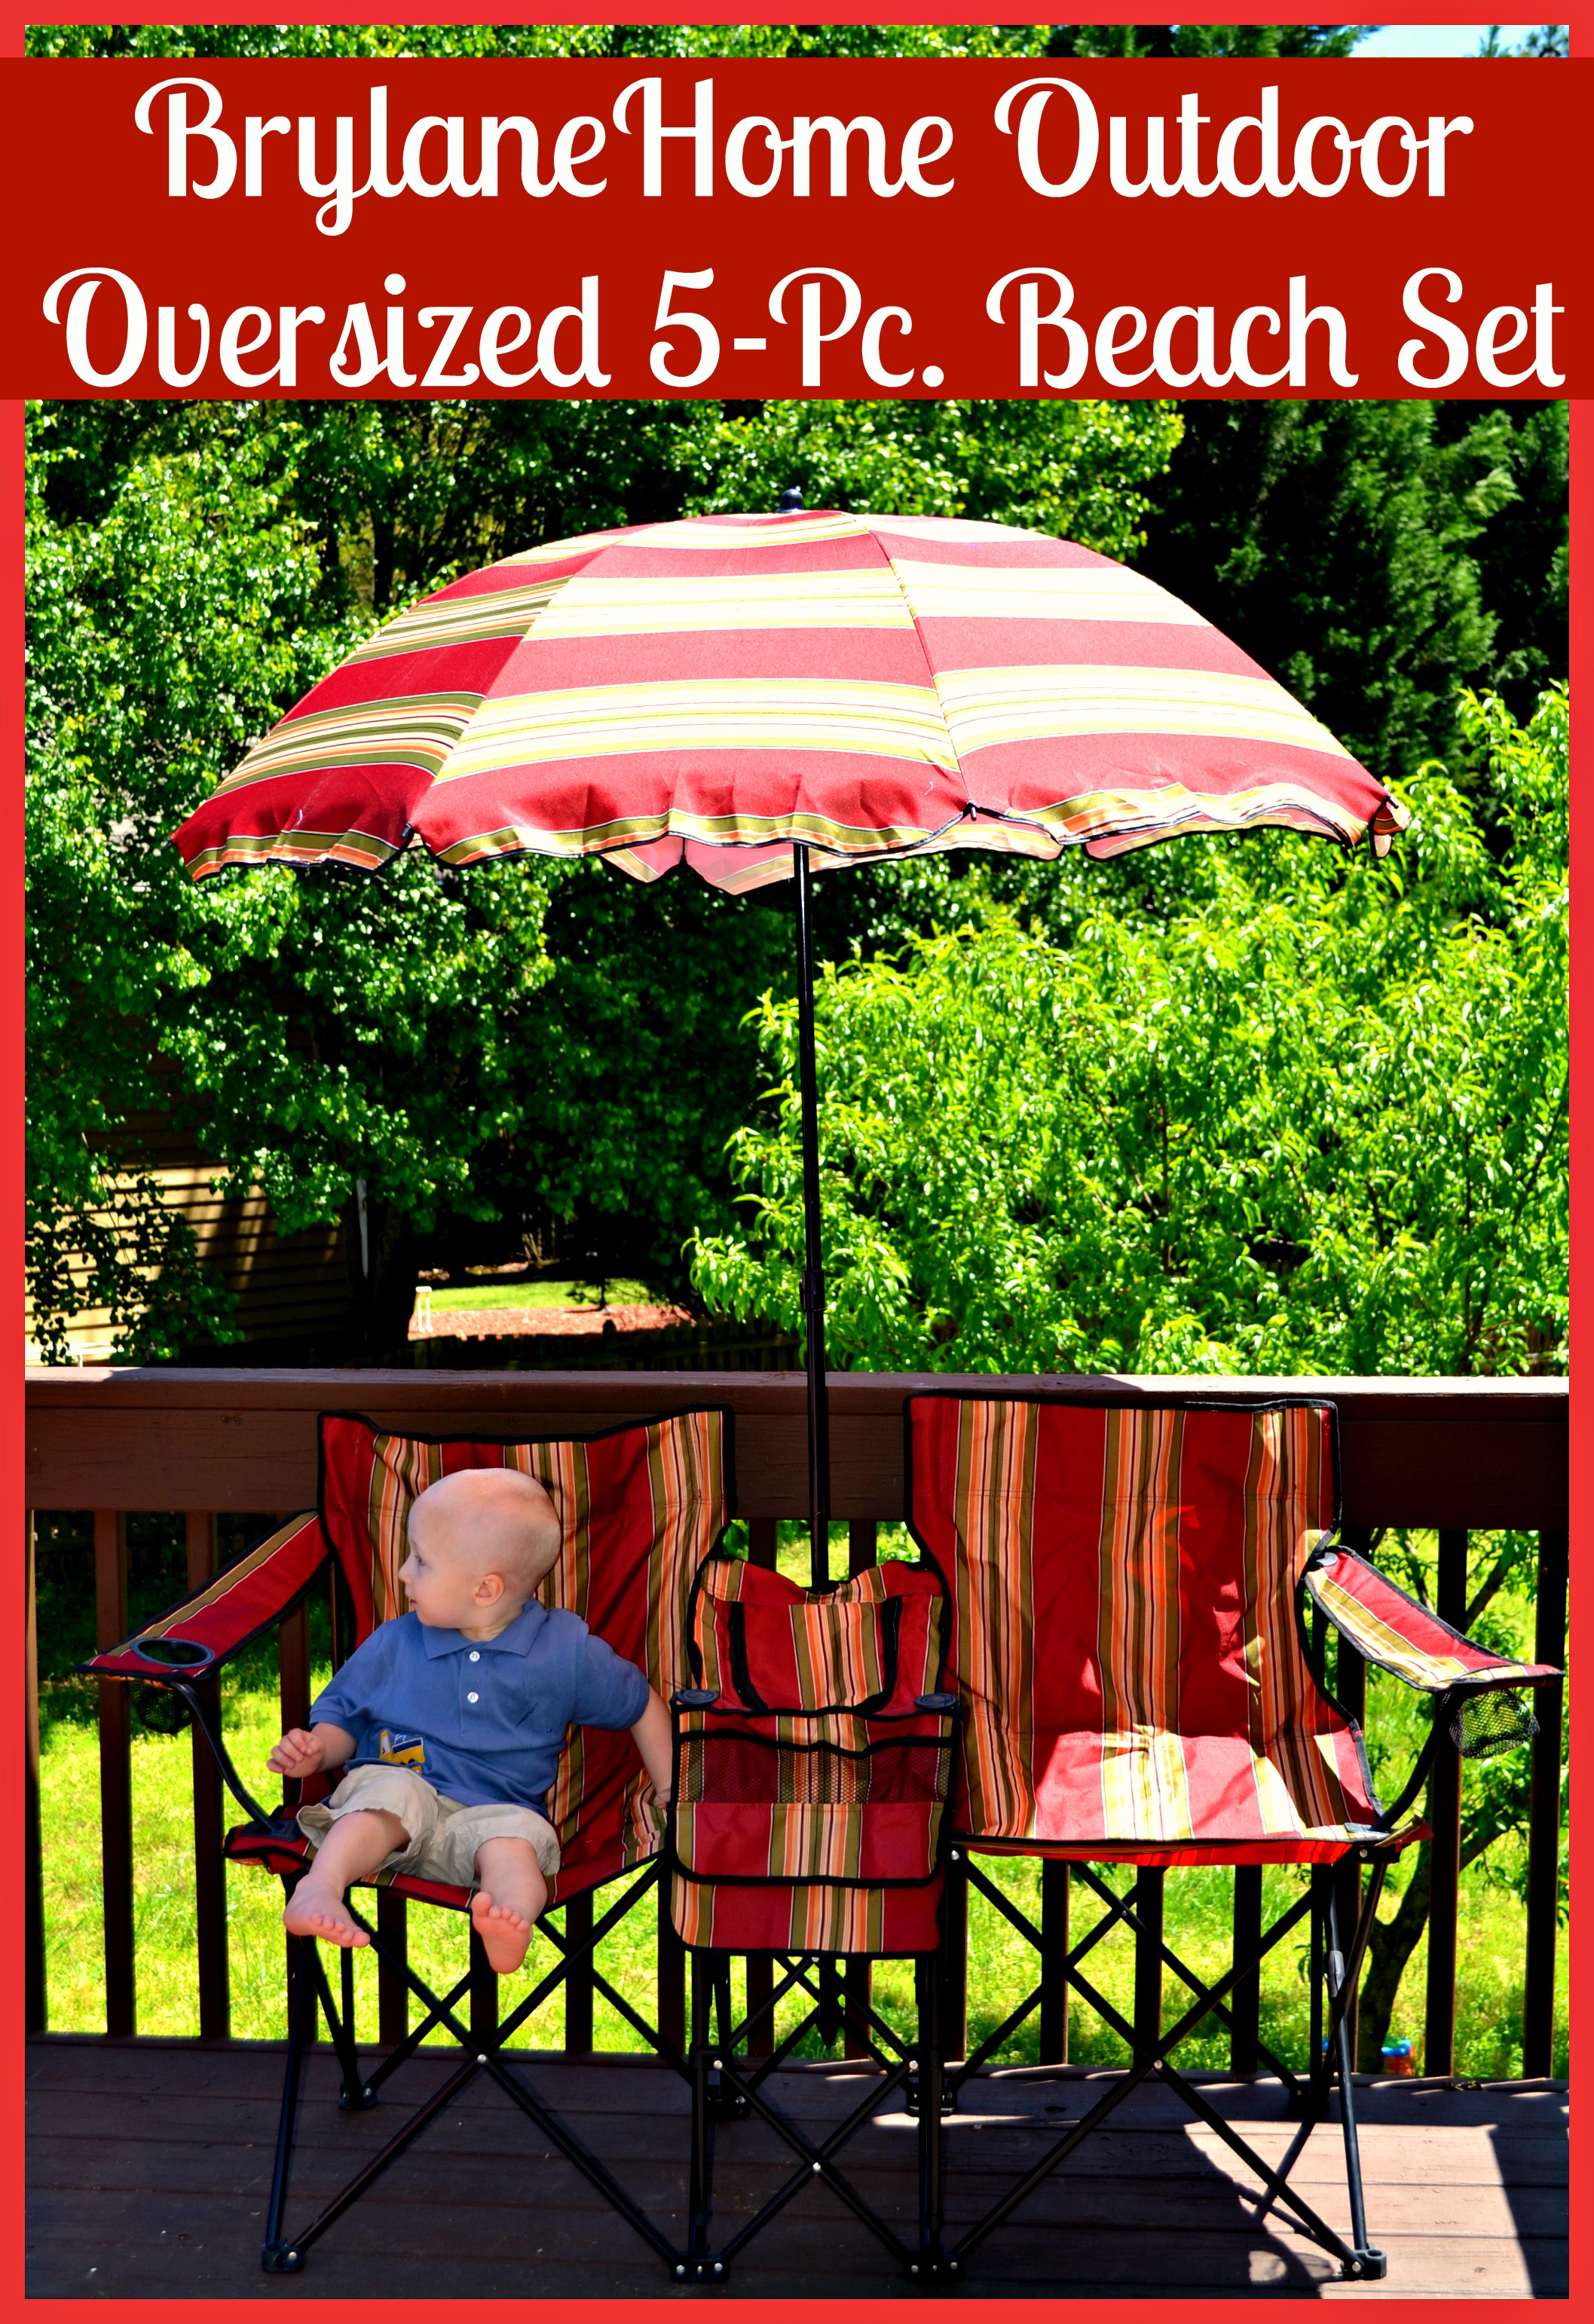 BrylaneHome Outdoor Oversized 5-Pc. Beach Set Review